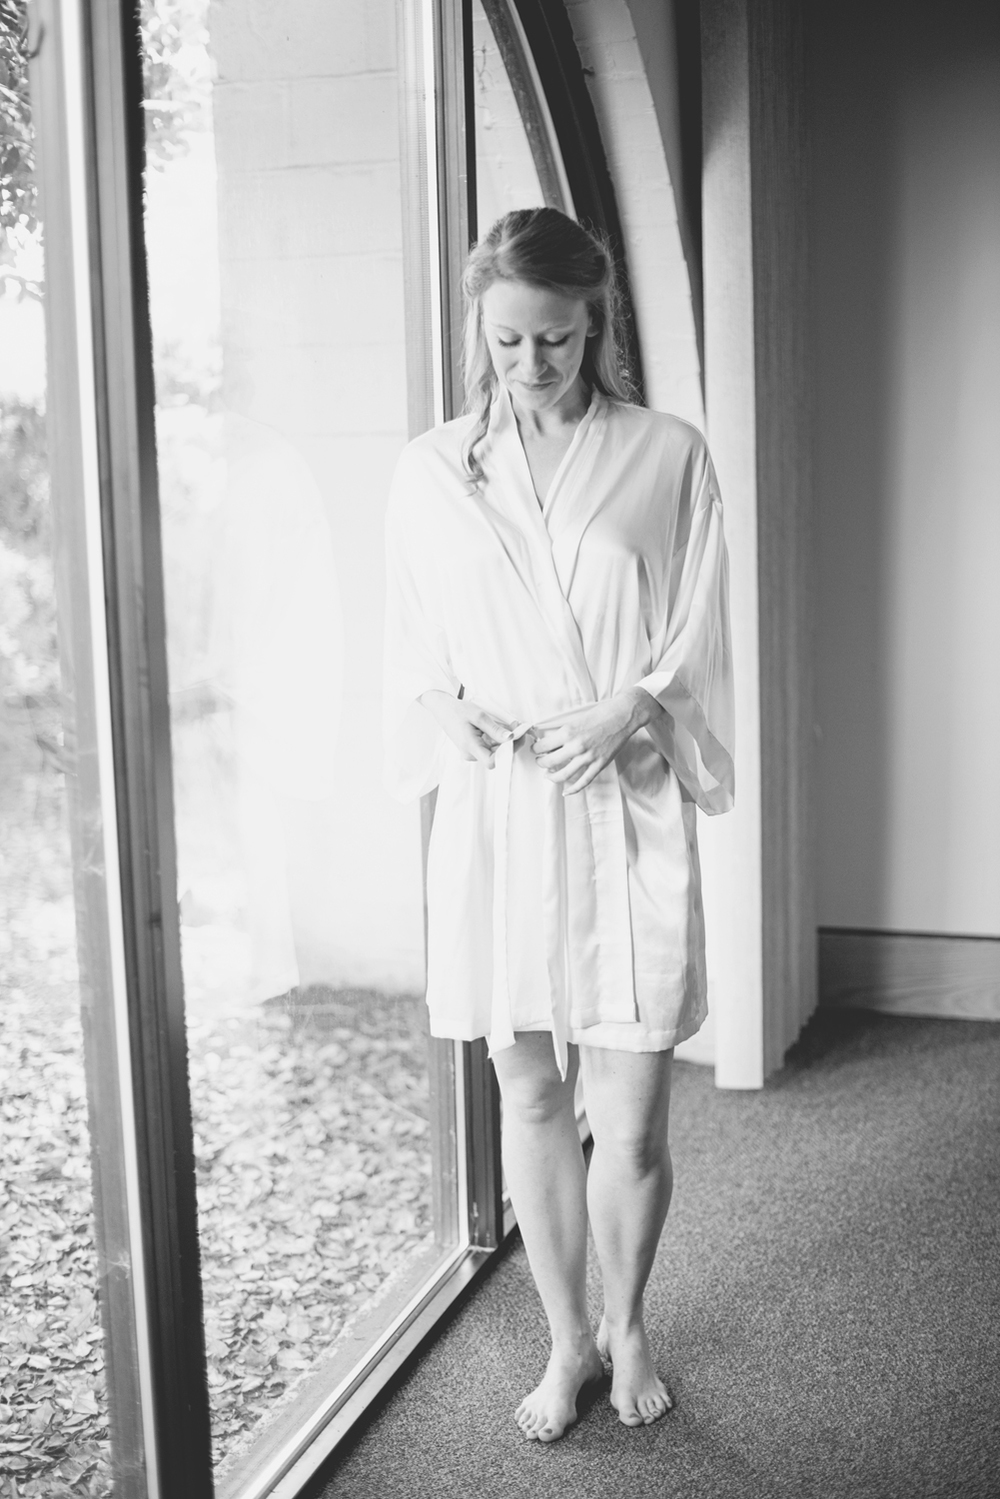 Mariners Museum Wedding | Newport News, Virginia |  Black & white bridal portrait